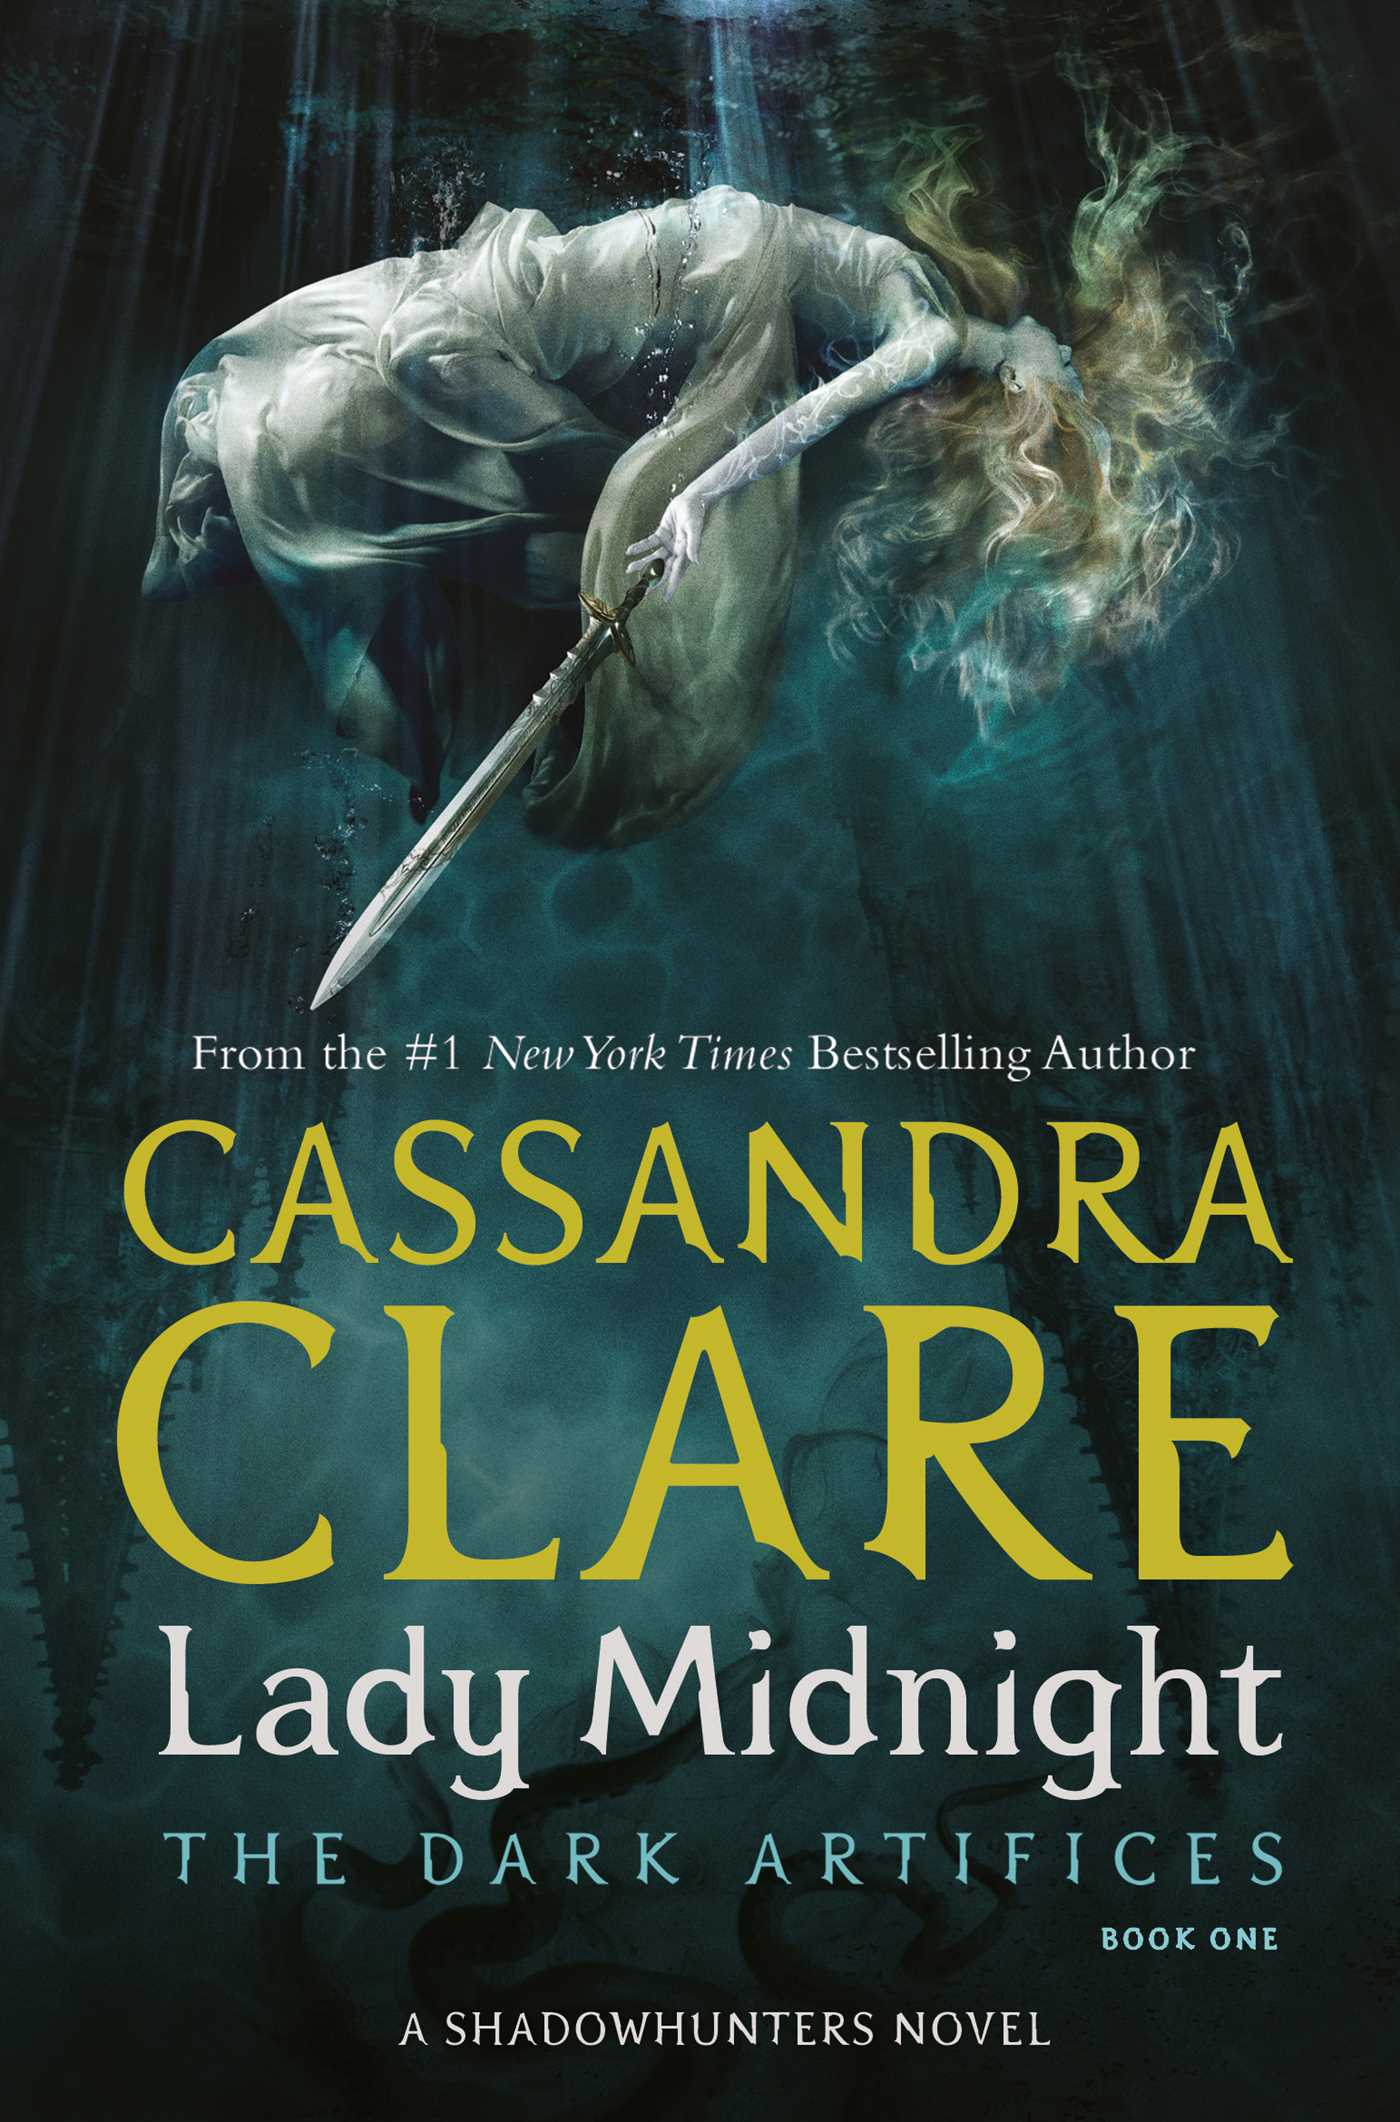 Lady midnight 9781471116636 hr